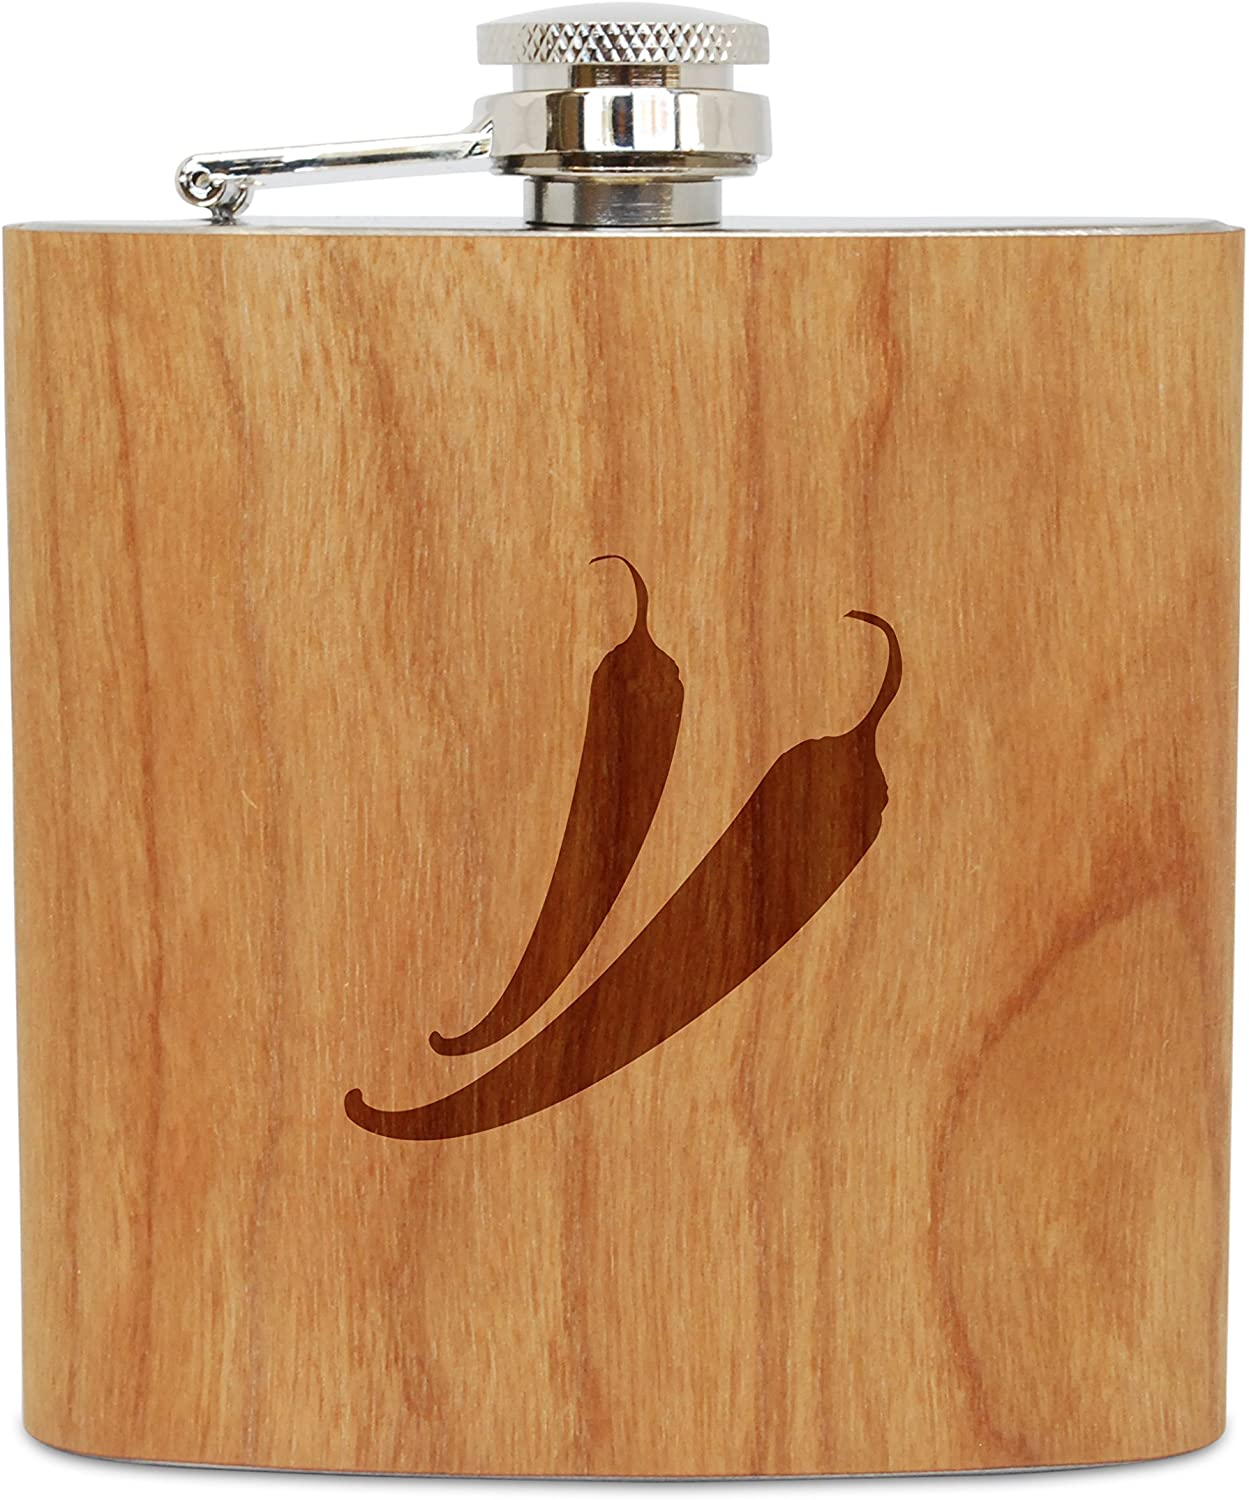 WOODEN ACCESSORIES COMPANY Cherry Wood Flask With Stainless Steel Body - Laser Engraved Flask With Peppers Design - 6 Oz Wood Hip Flask Handmade In USA